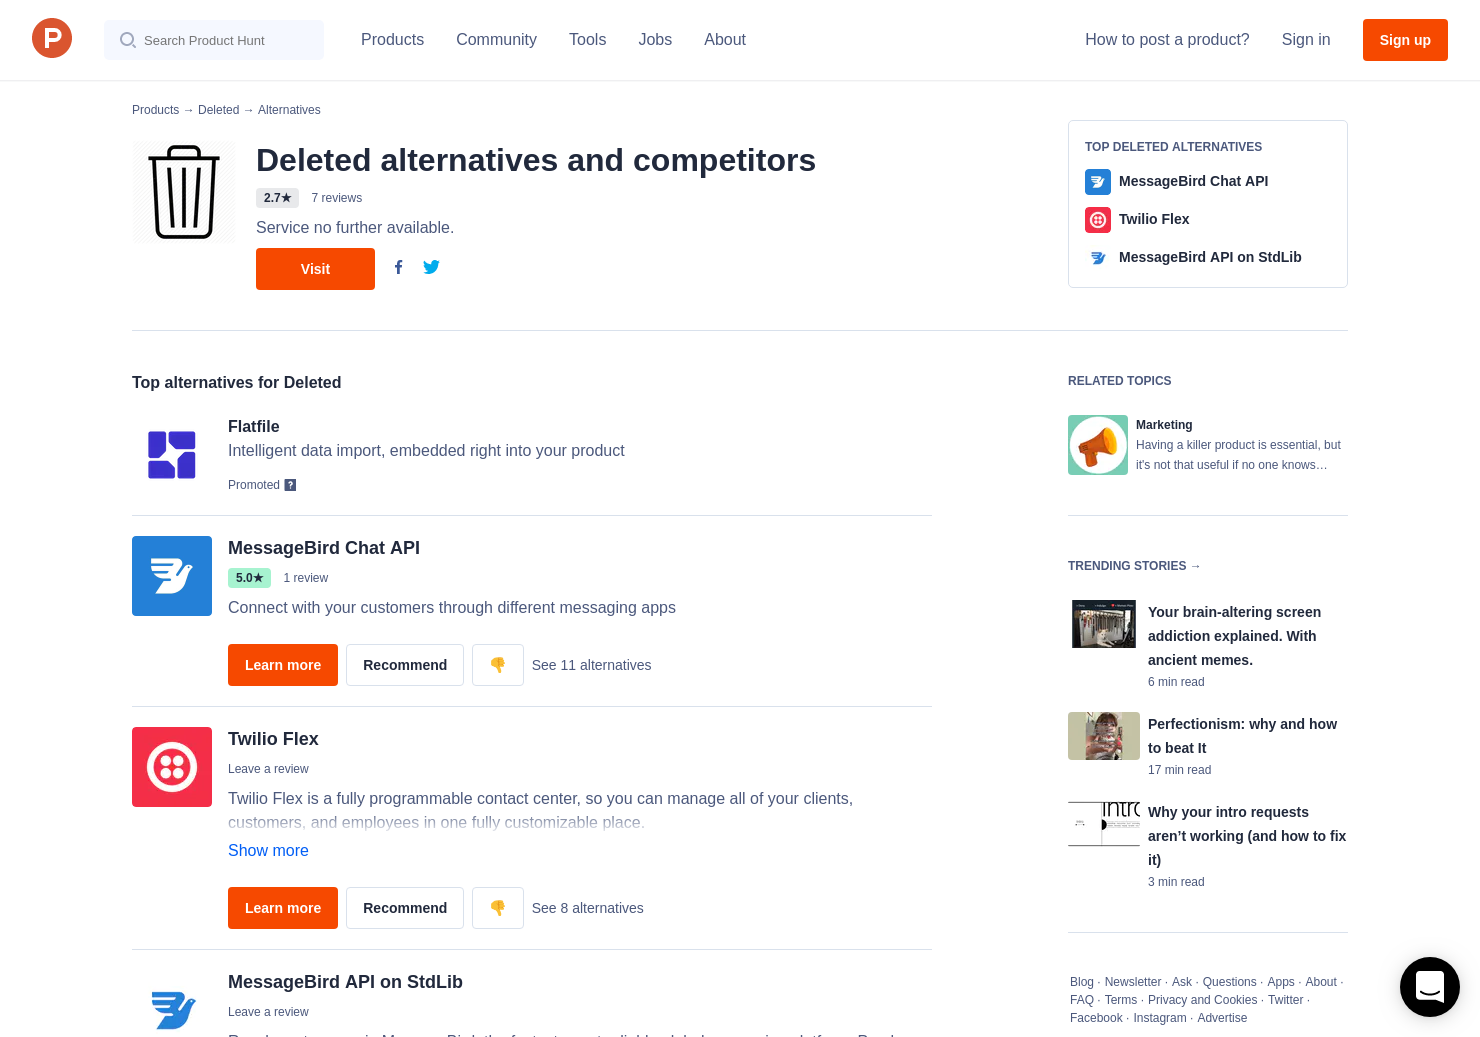 6 Alternatives to Deleted | Product Hunt